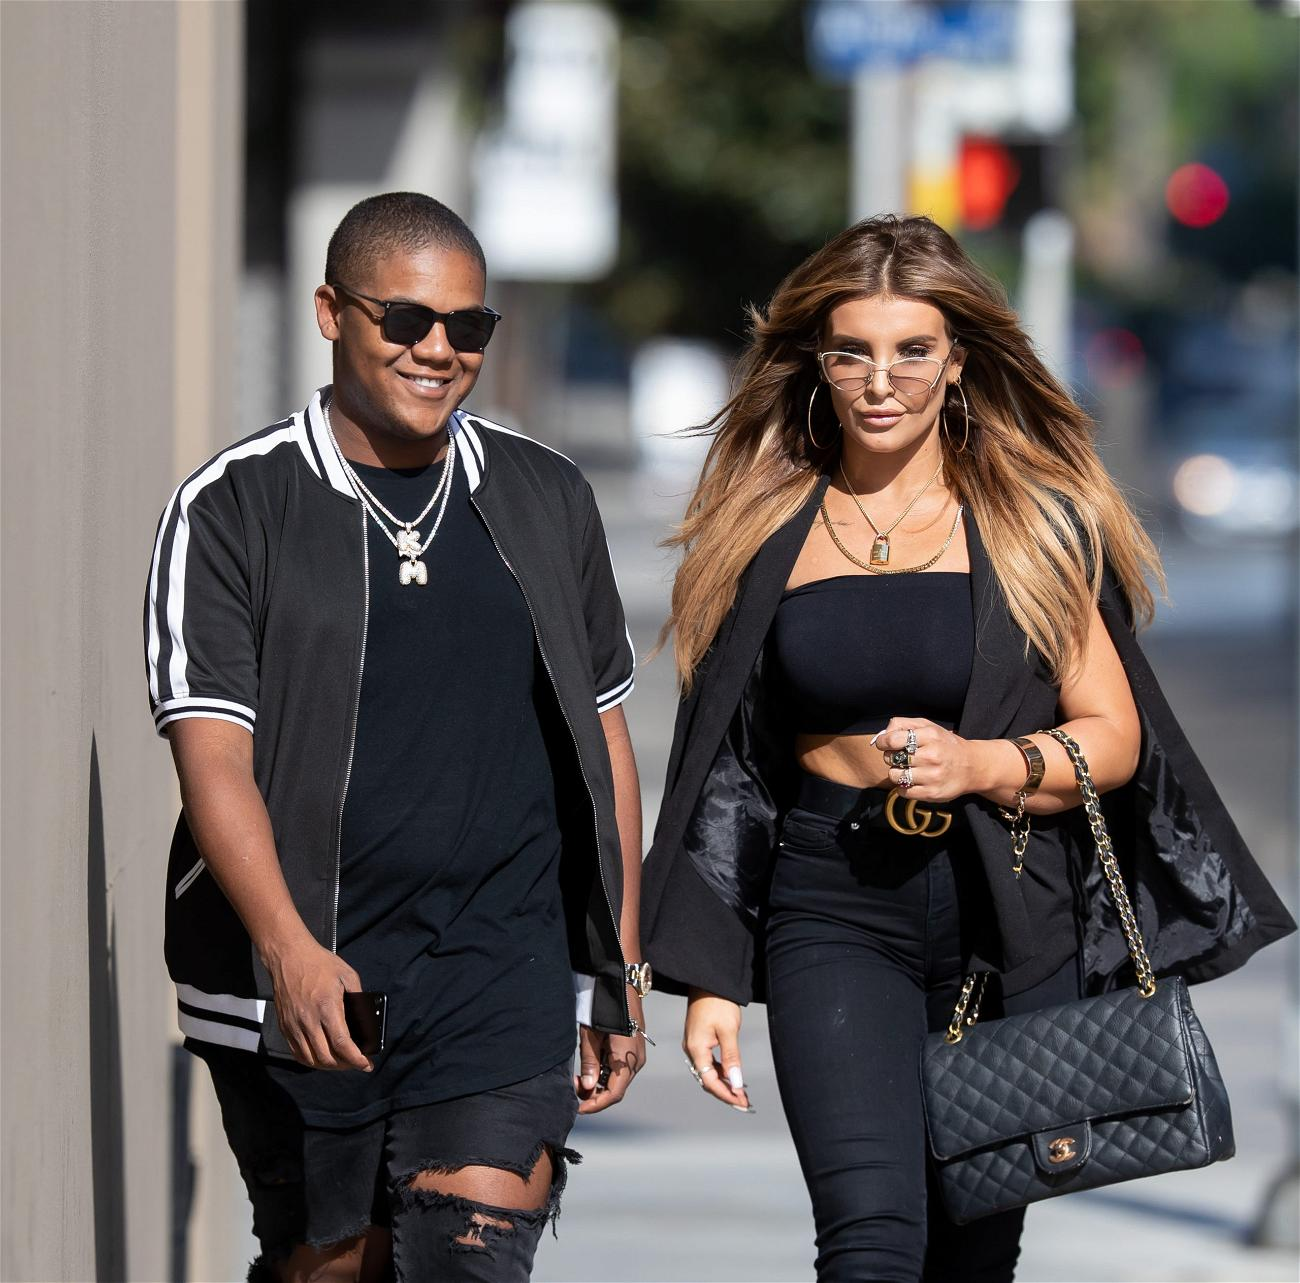 Kyle Massey Charged With Crime